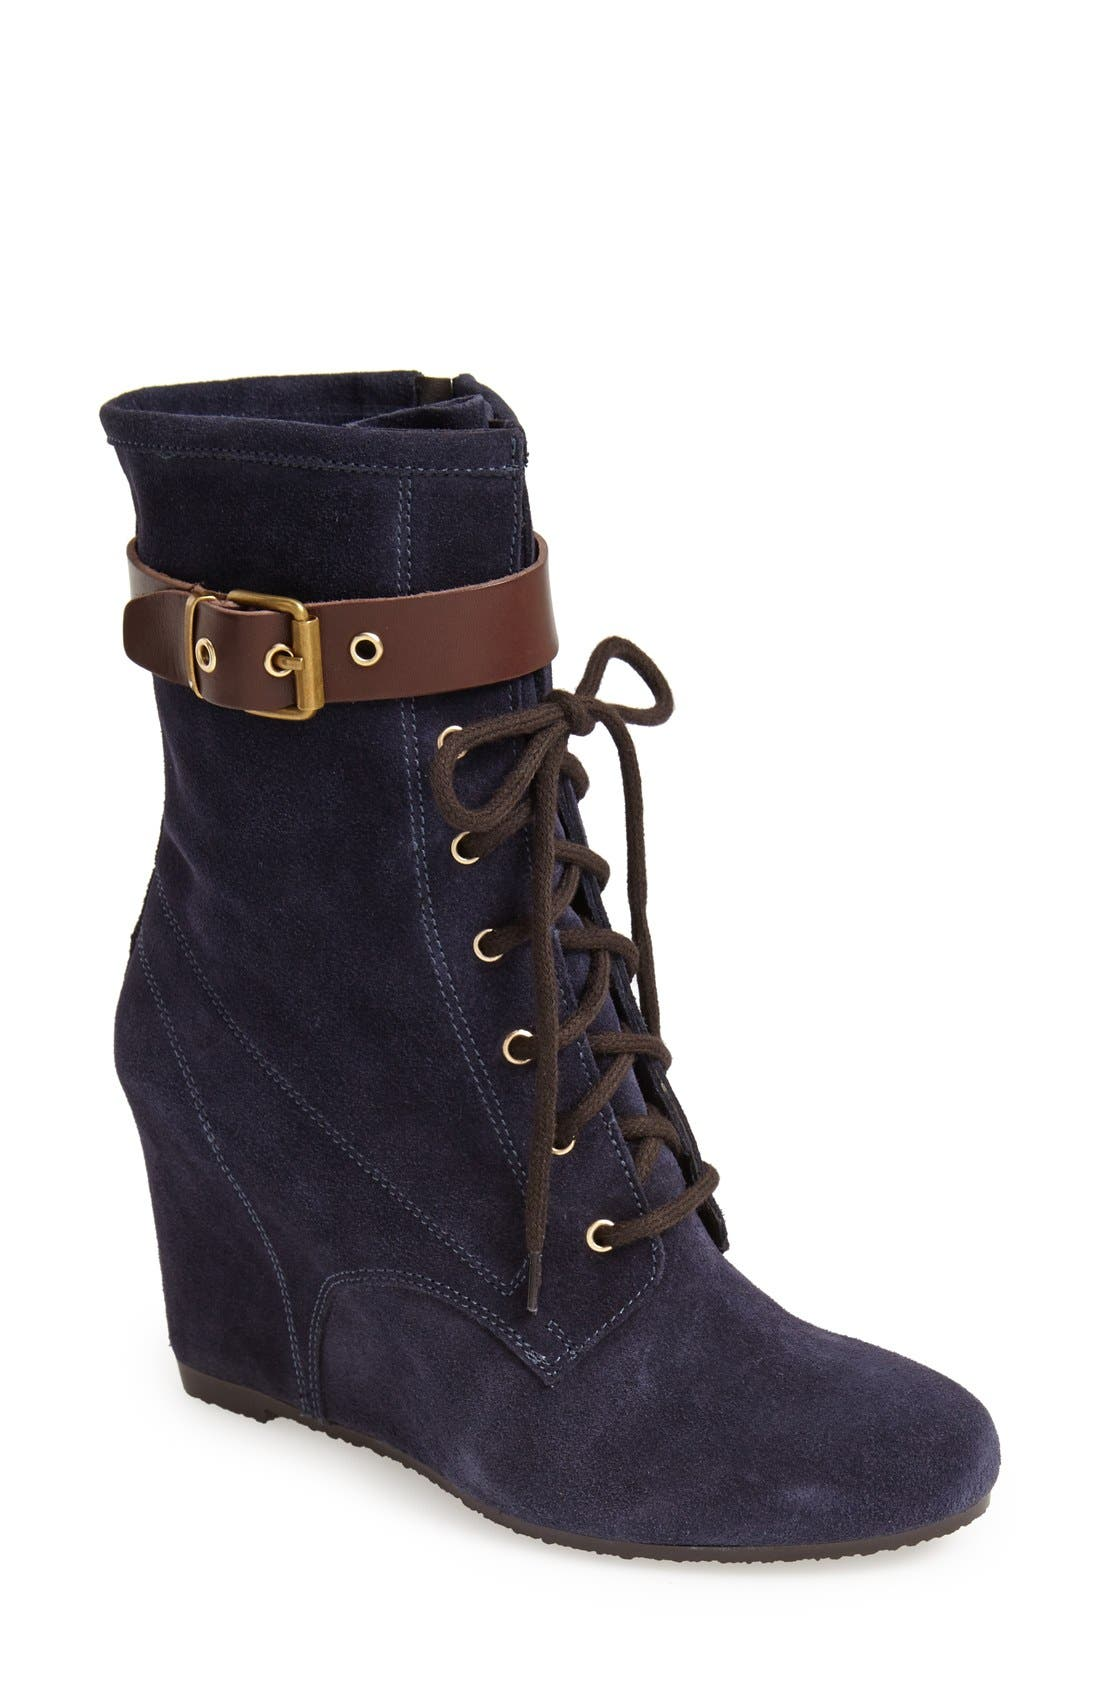 Alternate Image 1 Selected - André Assous Suede Wedge Boot (Women)